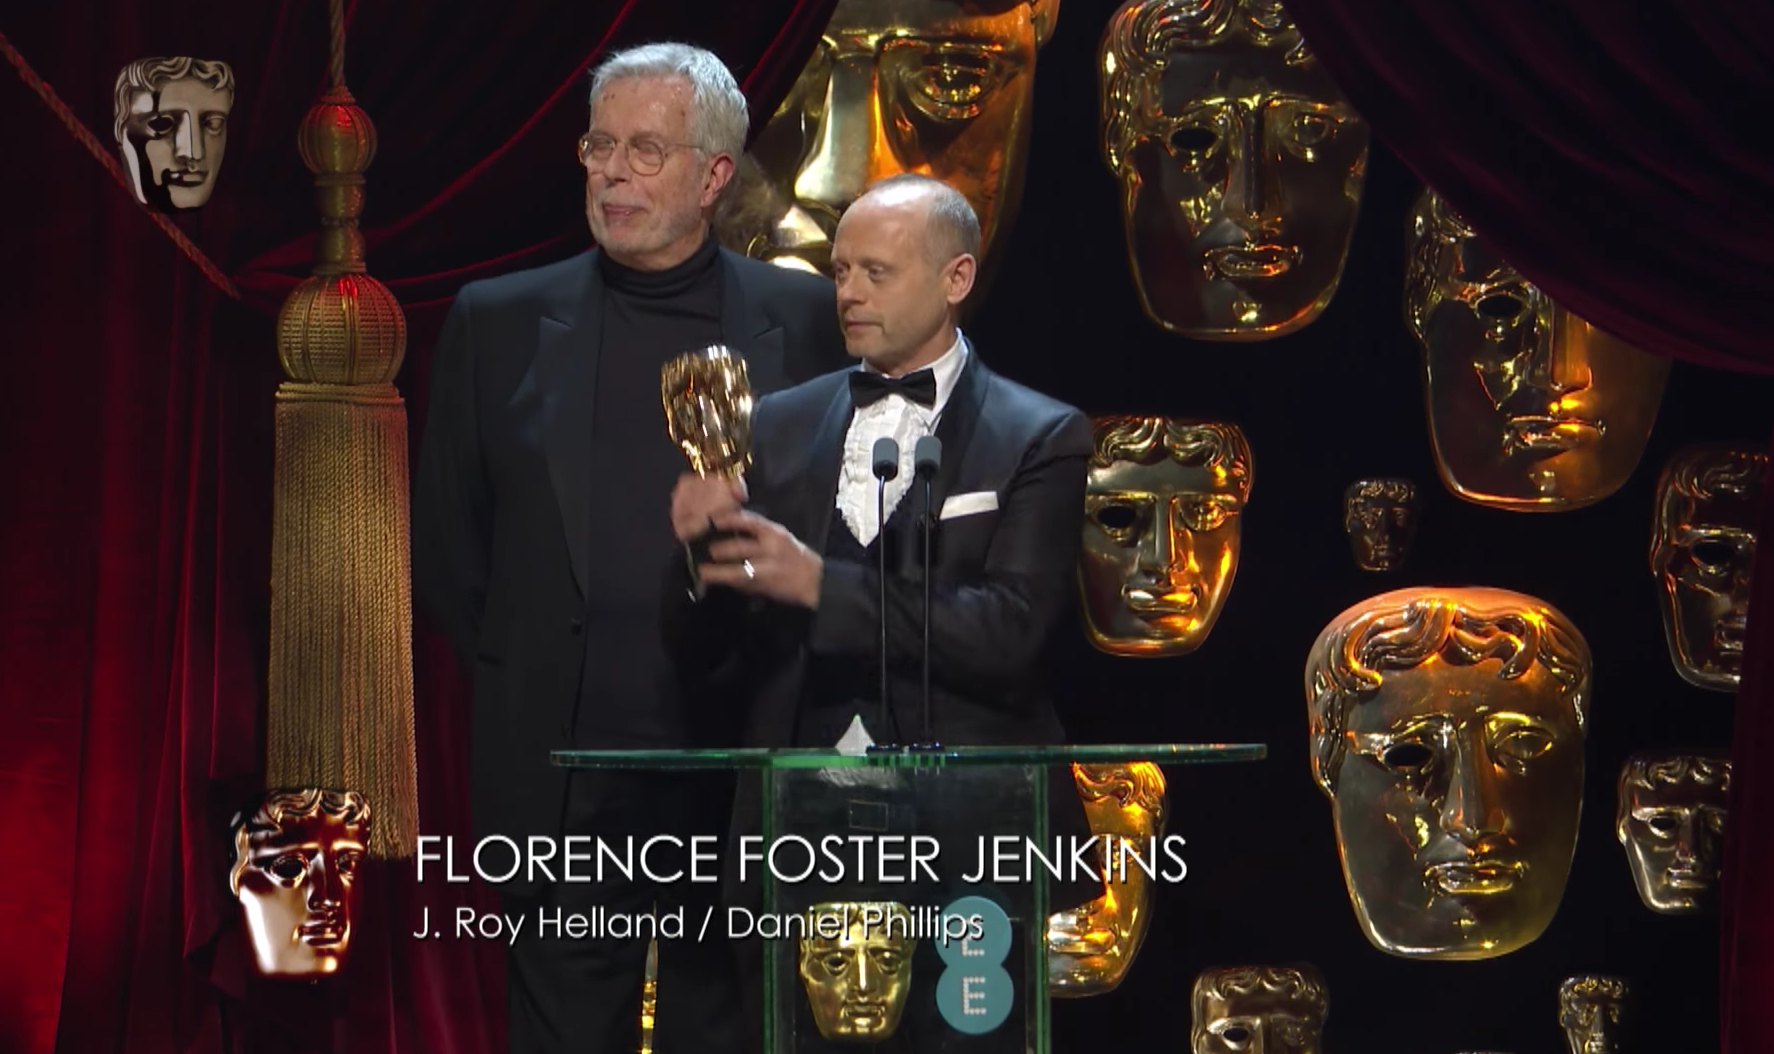 A win at the BAFTAS